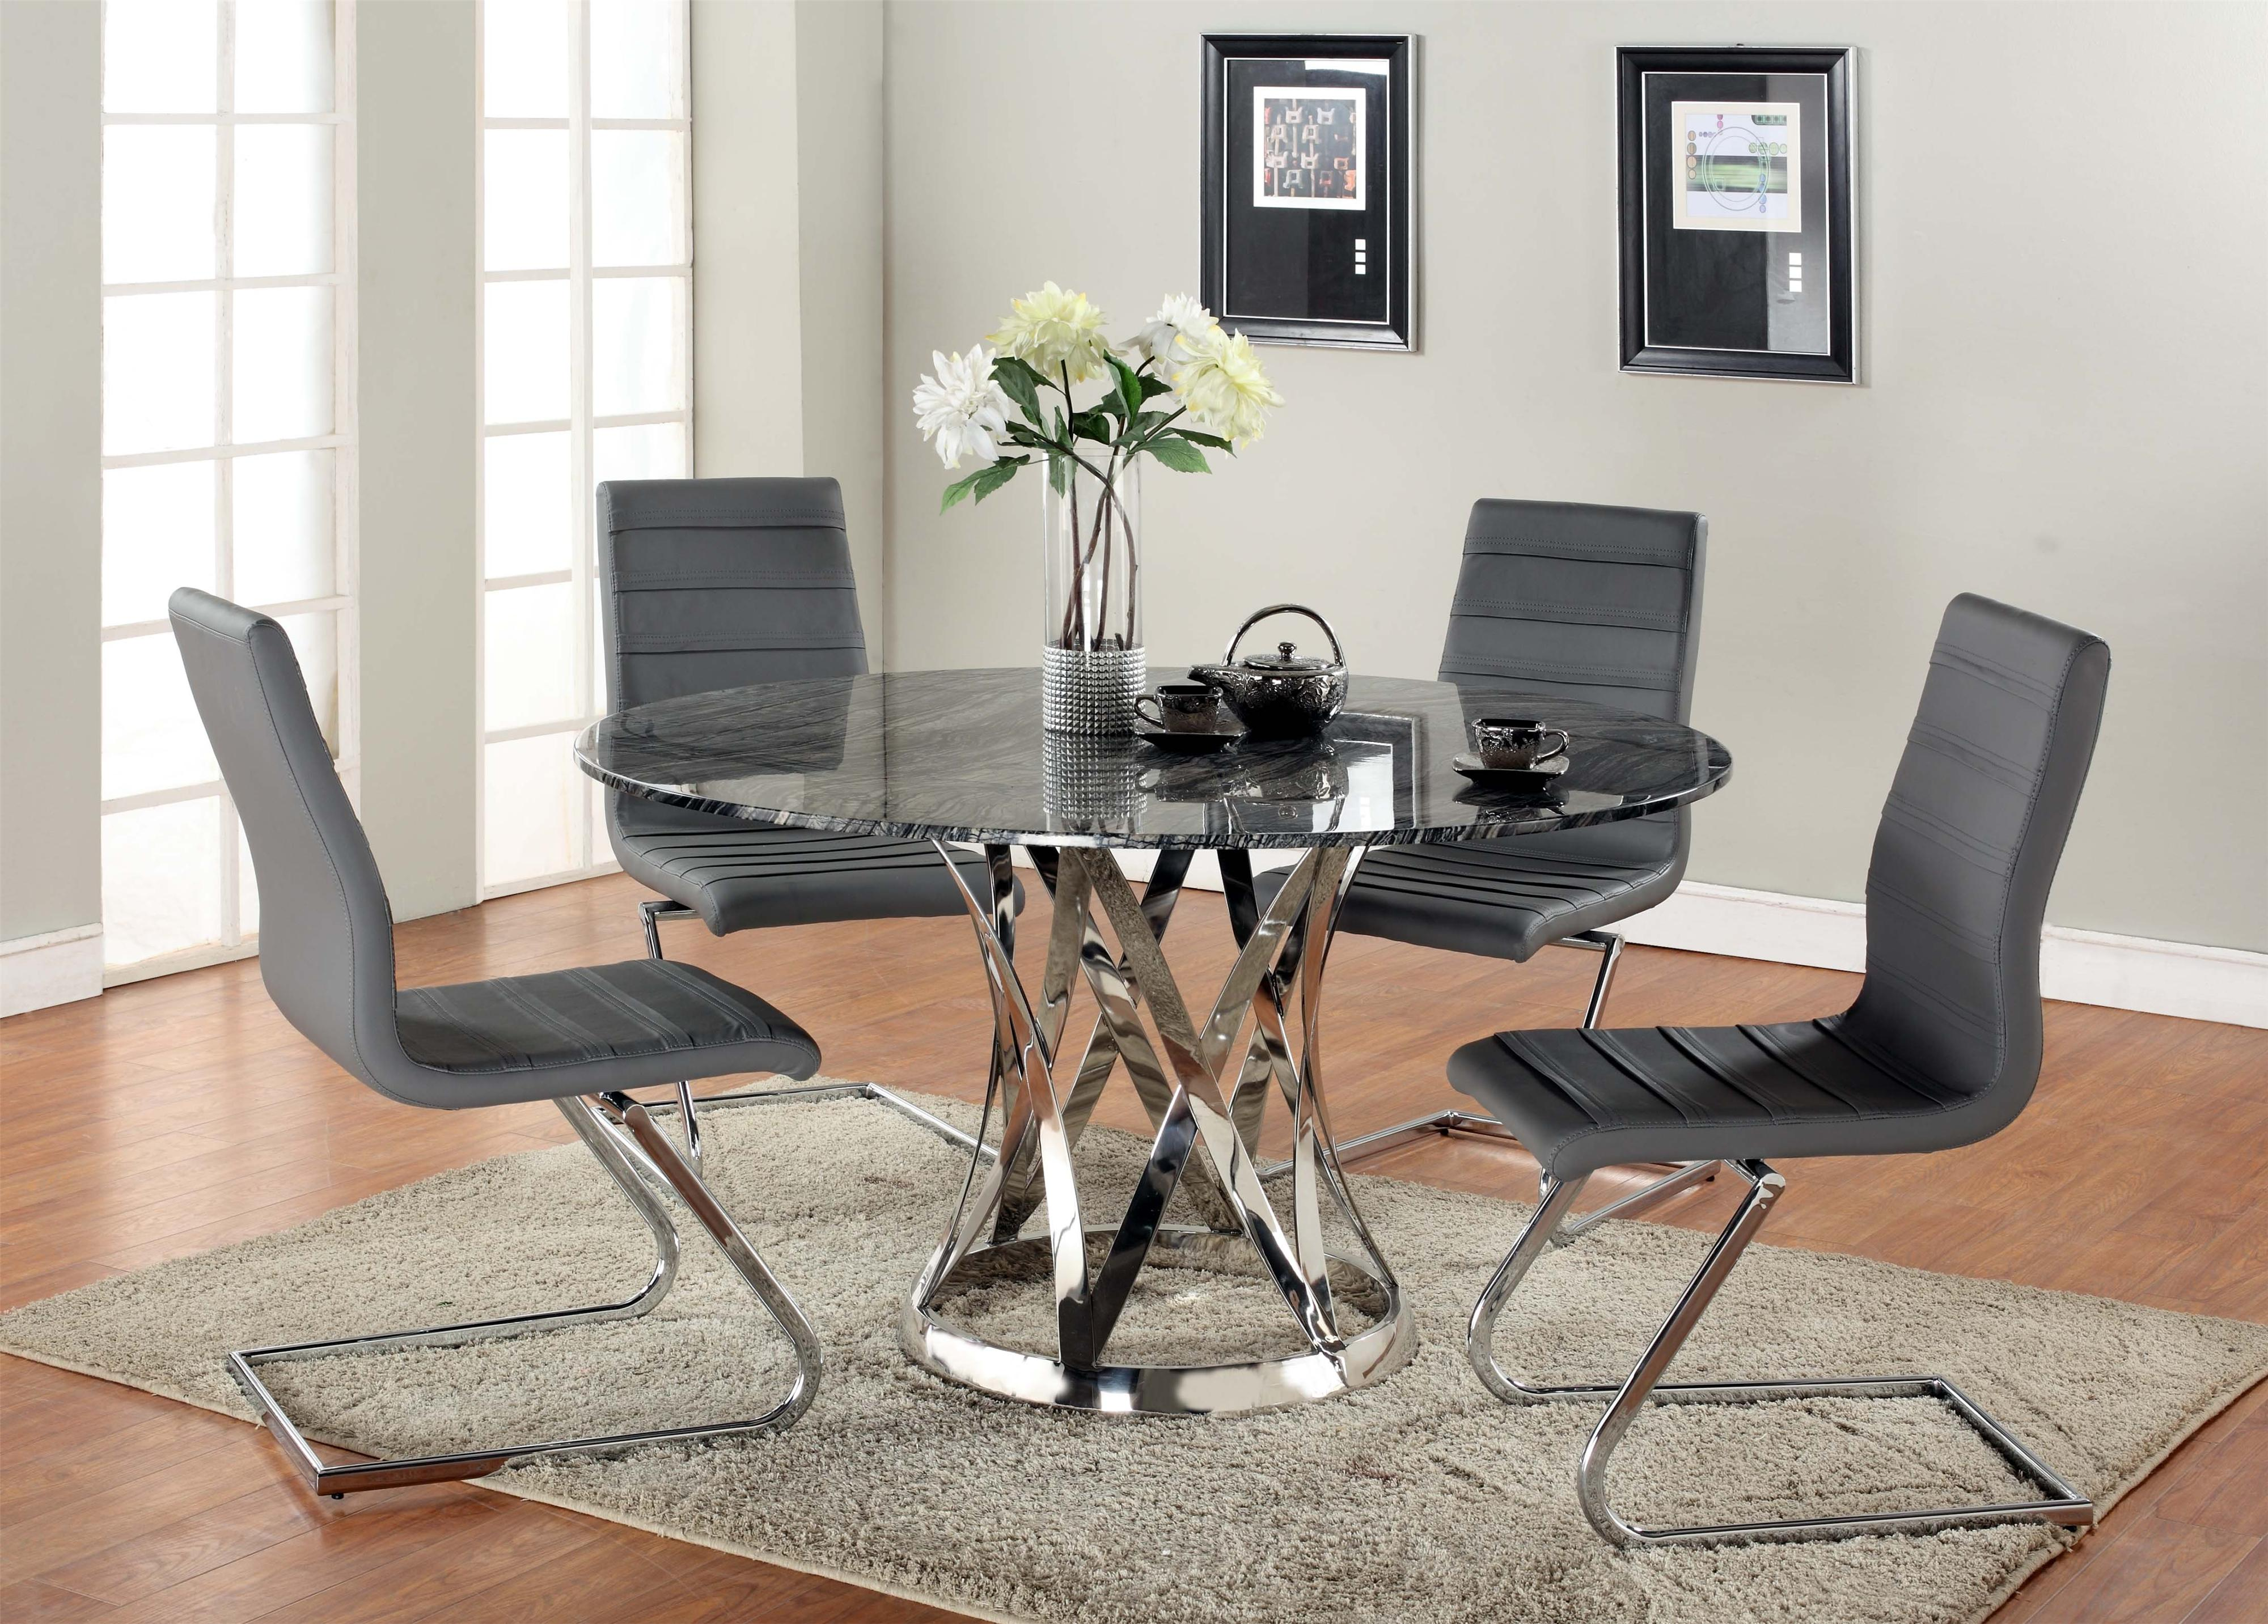 Janet Five-Piece Dining Set by Chintaly Imports at Nassau Furniture and Mattress